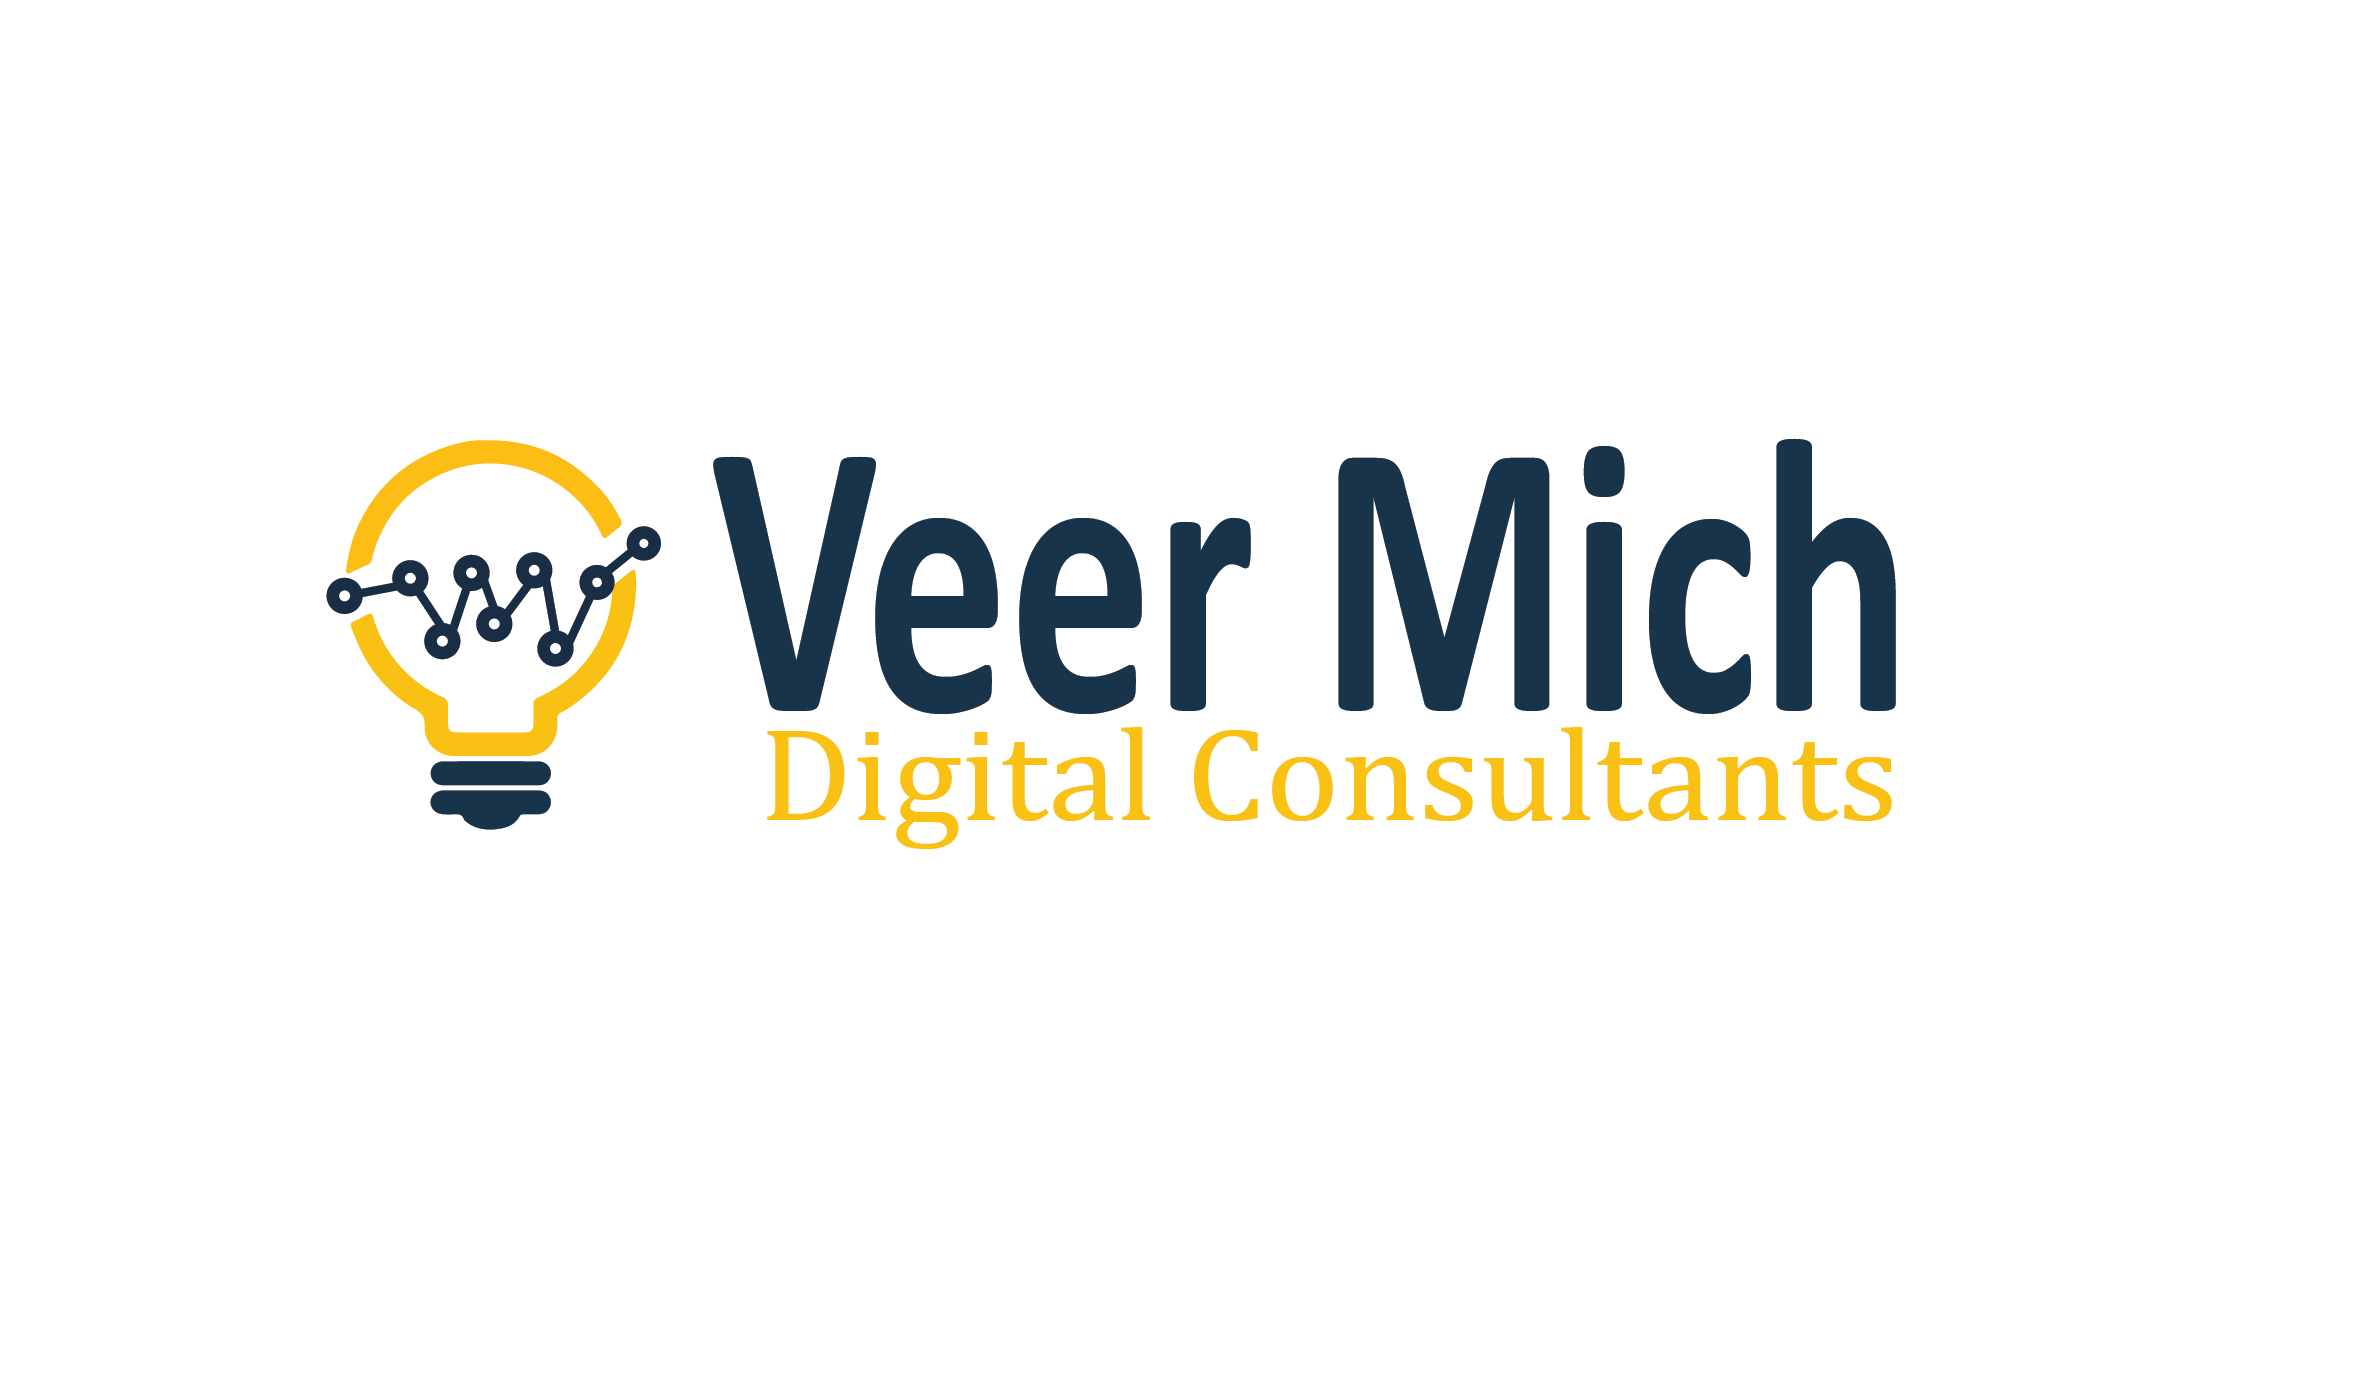 Veer Mich Digital Consultants